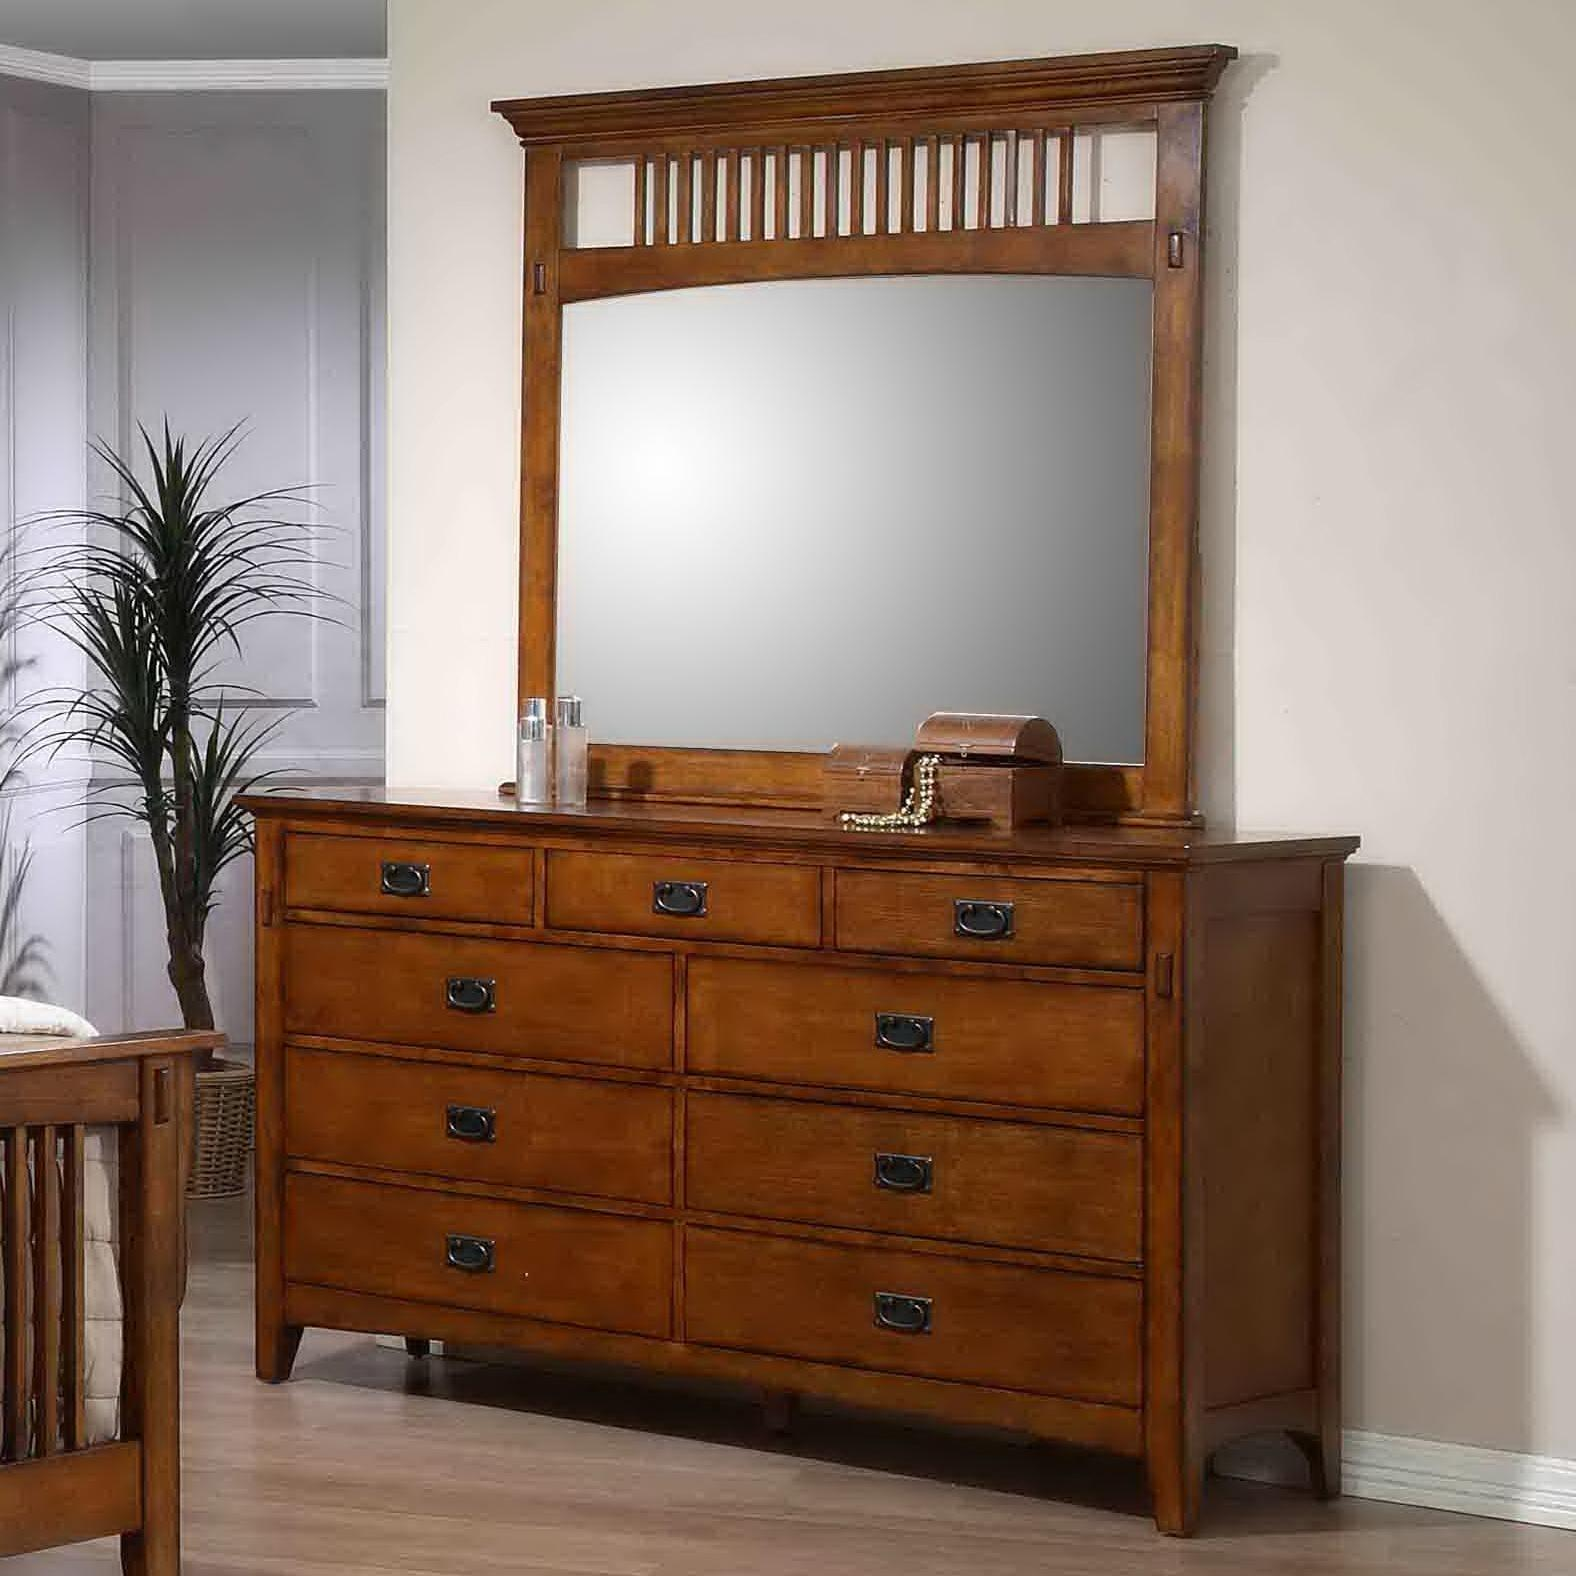 Vfm basics eee trudy mission style double dresser and for Mission style bedroom furniture